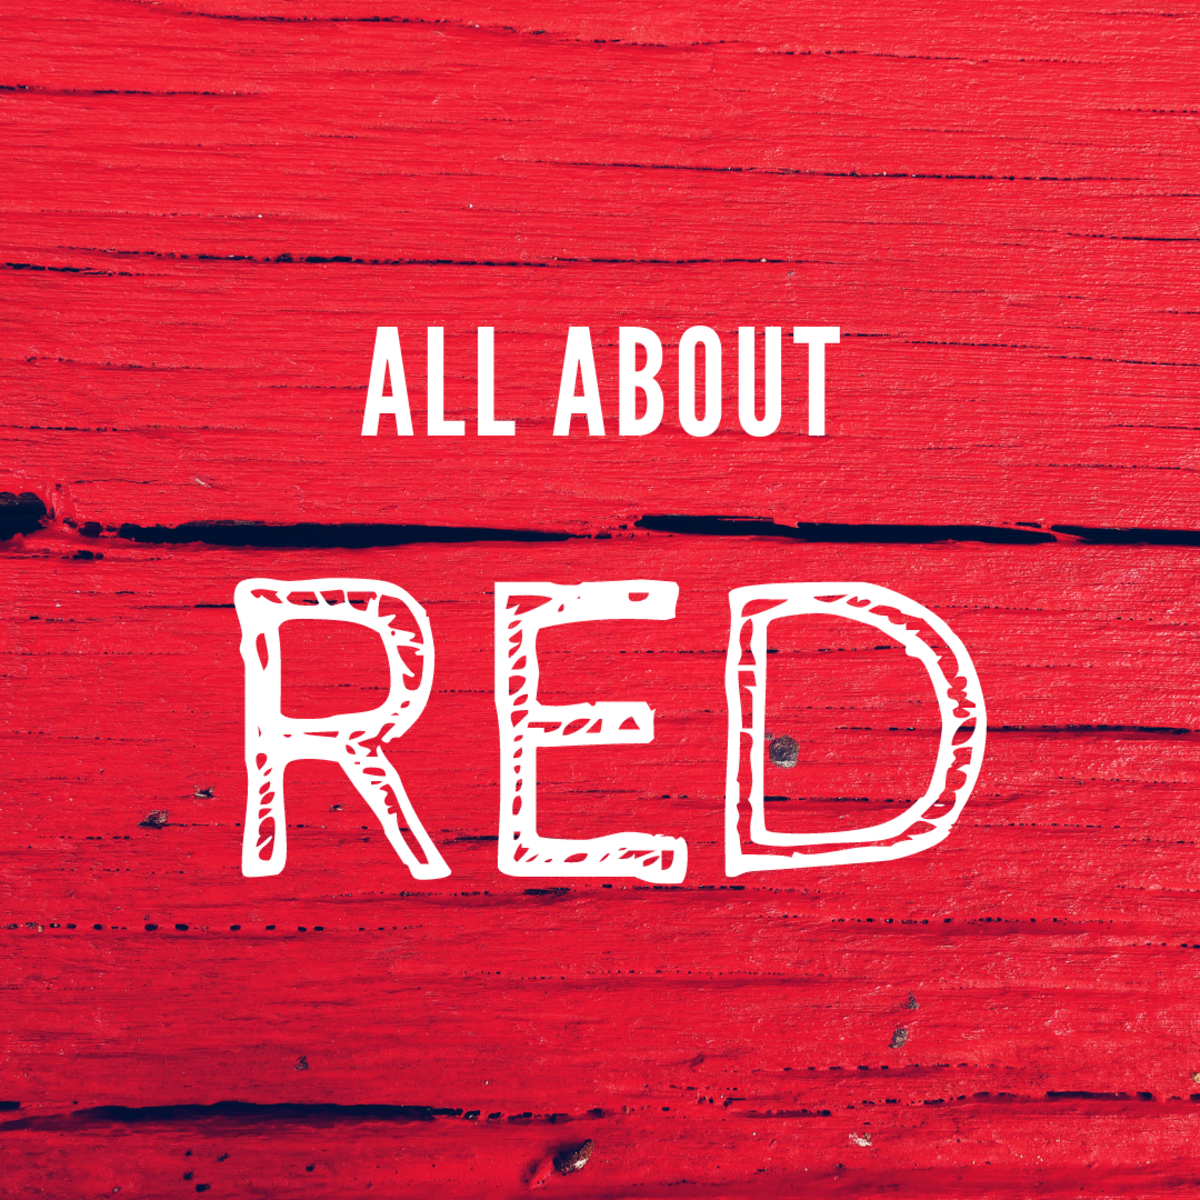 There's more to red than meets the eye.